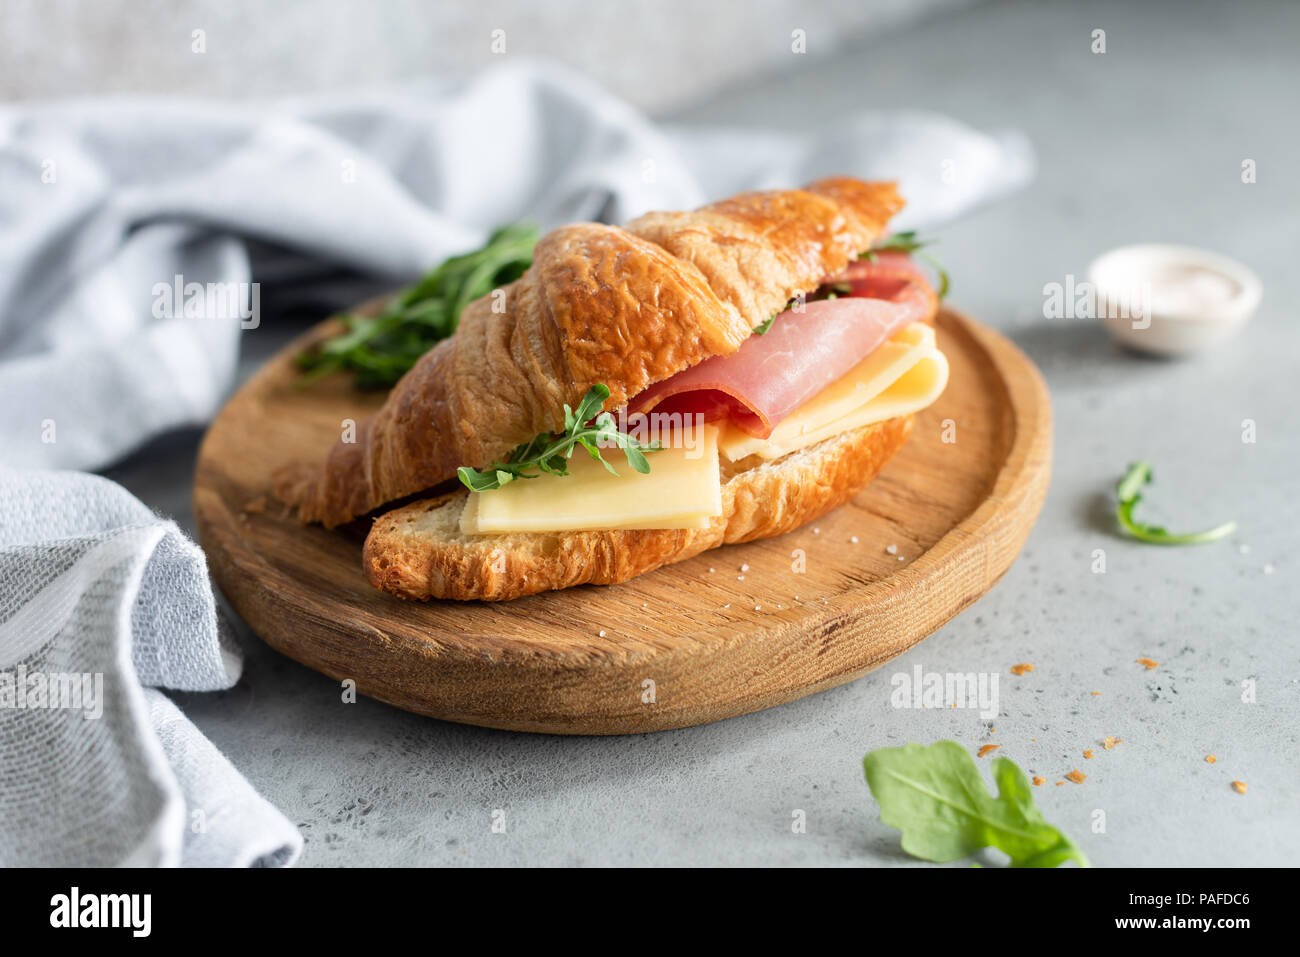 Sandwich with ham and cheese on croissant bun. Tasty croissant sandwich. Selective focus - Stock Image